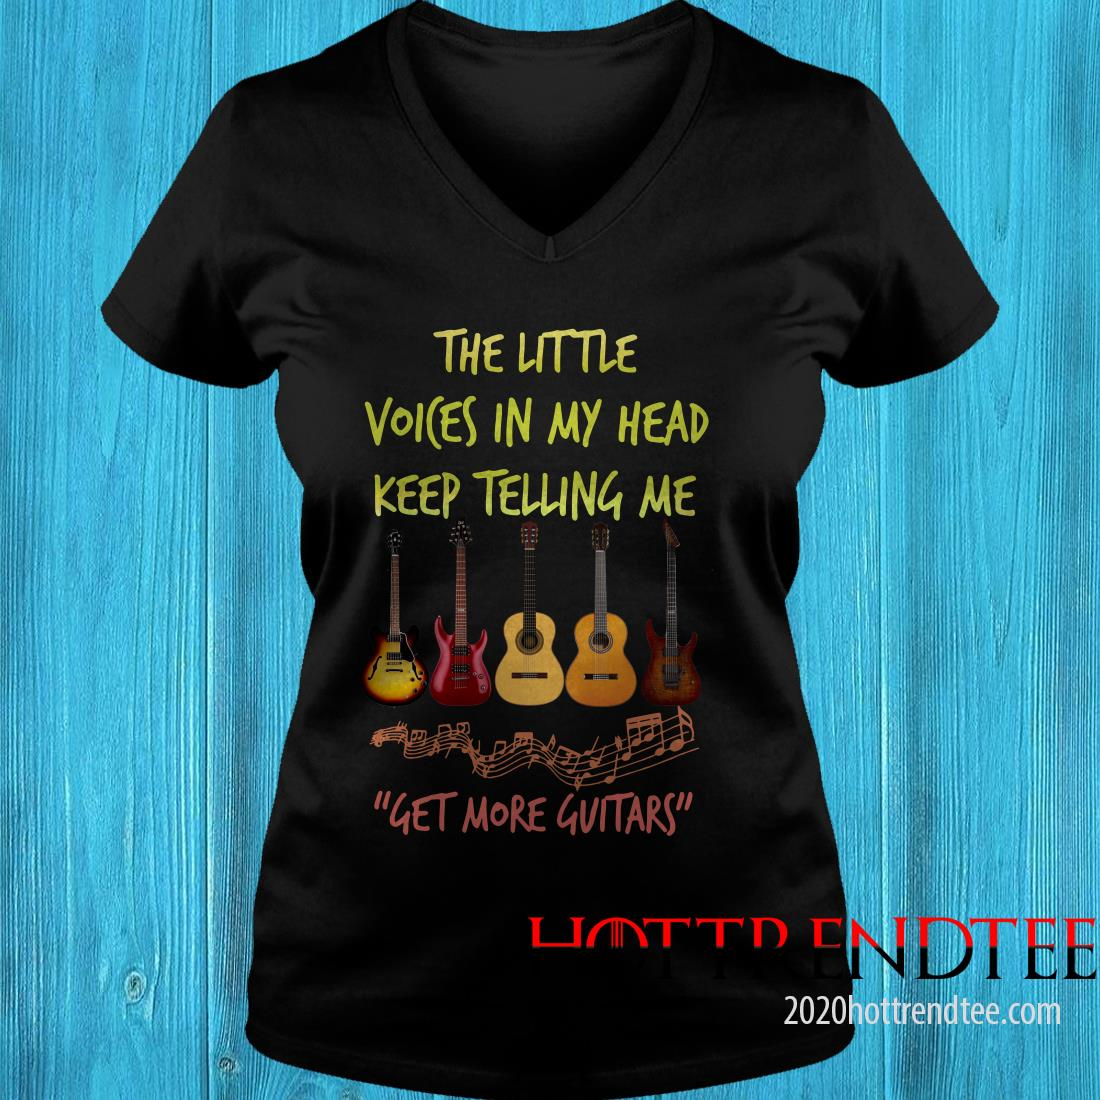 The Little Voices In My Head Keep Telling Me Get More Guitars Women's T-Shirt